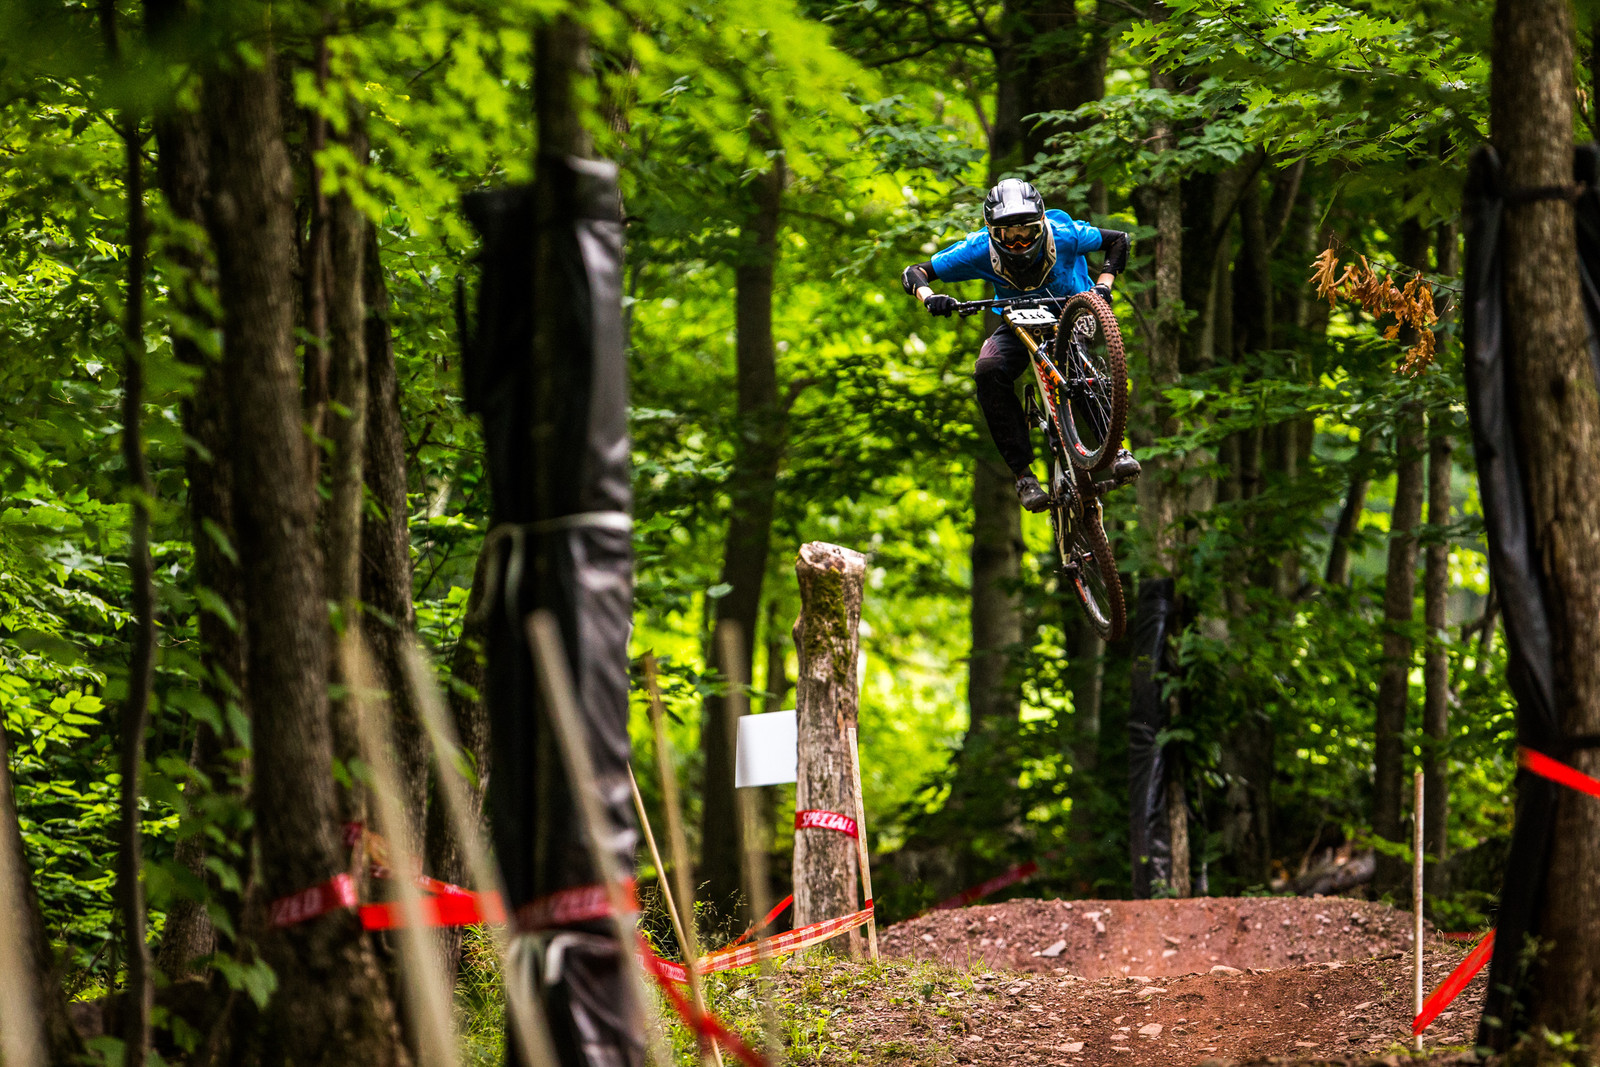 Matt Driscoll - RACE DAY GALLERY - 2017 Pro GRT, Windham, NY - Mountain Biking Pictures - Vital MTB